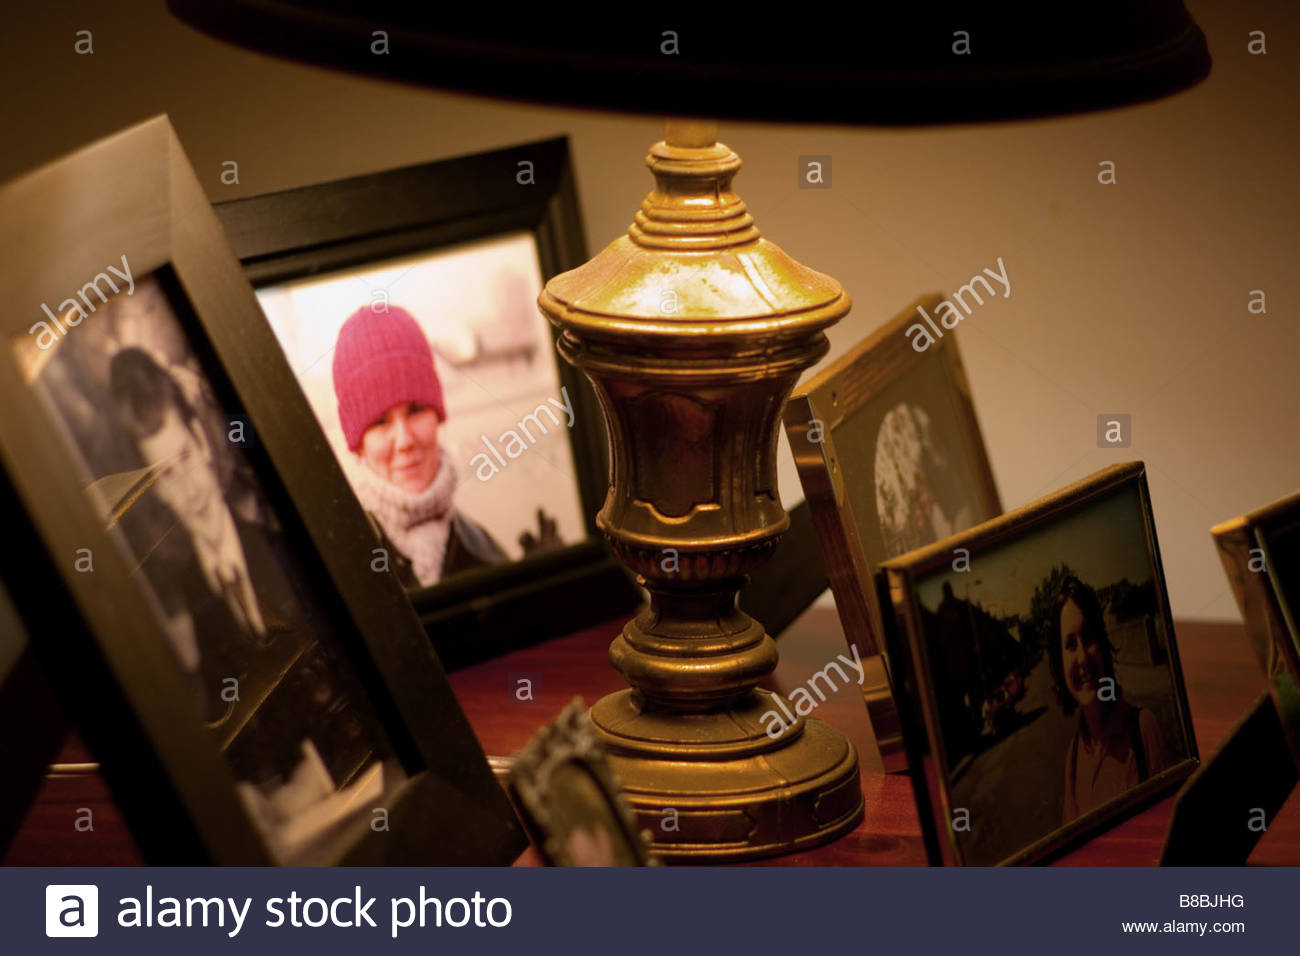 A display of family photos. - Stock Image